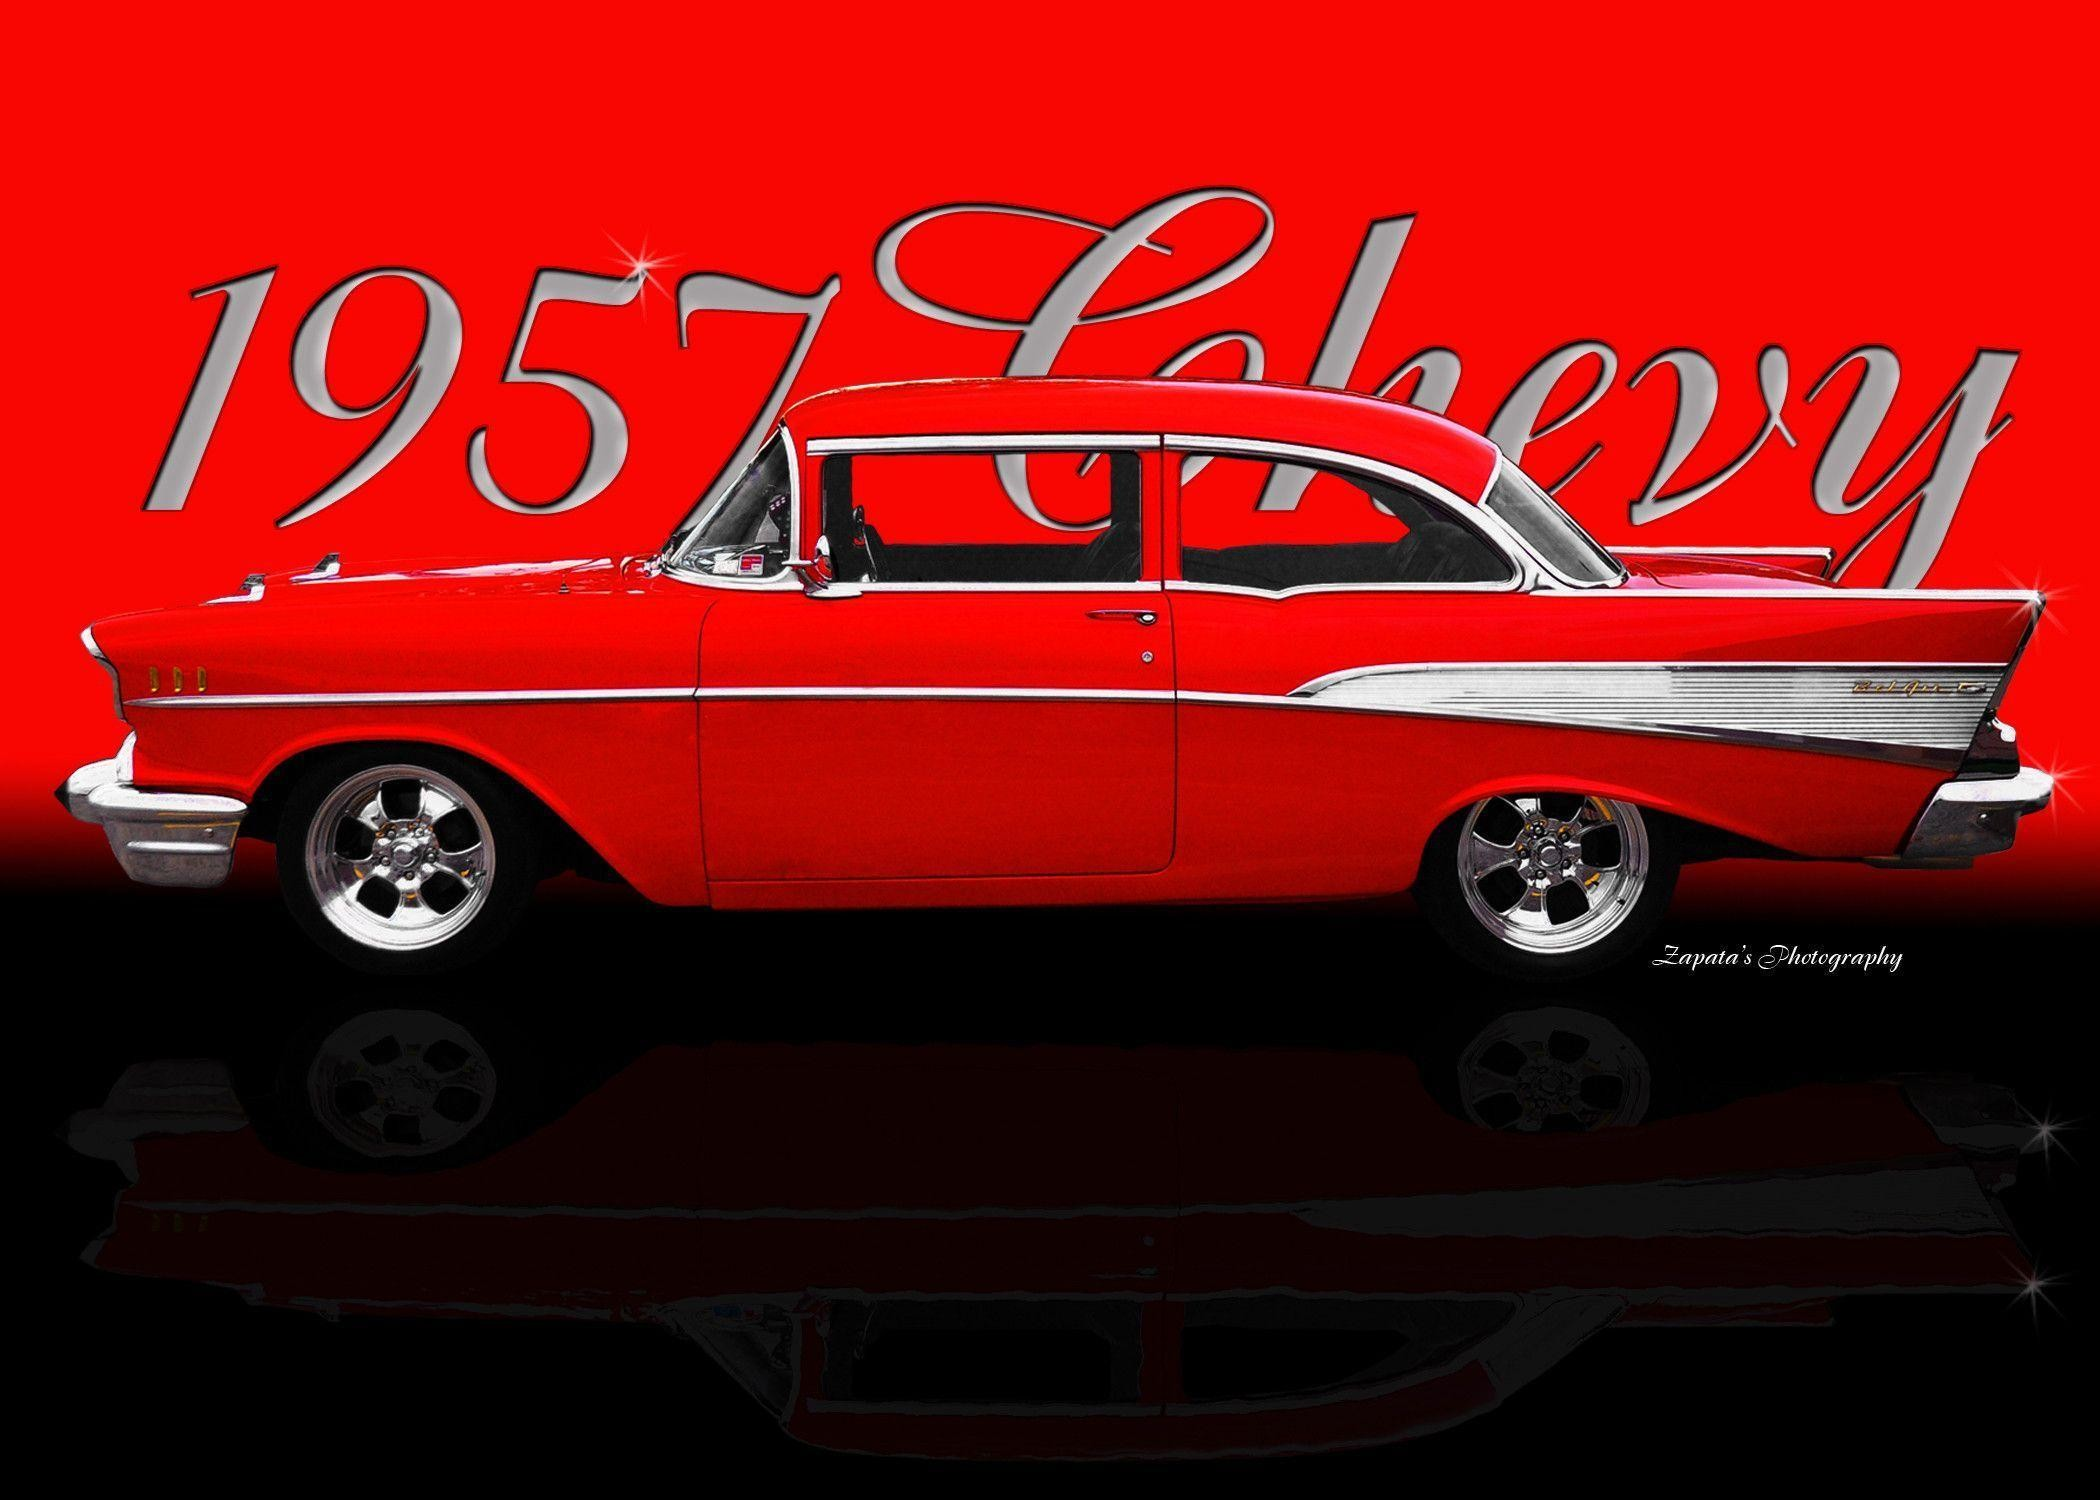 57 Chevy Wallpaper 59 Images 1957 Chevrolet El Camino 2764x1843 Phantom